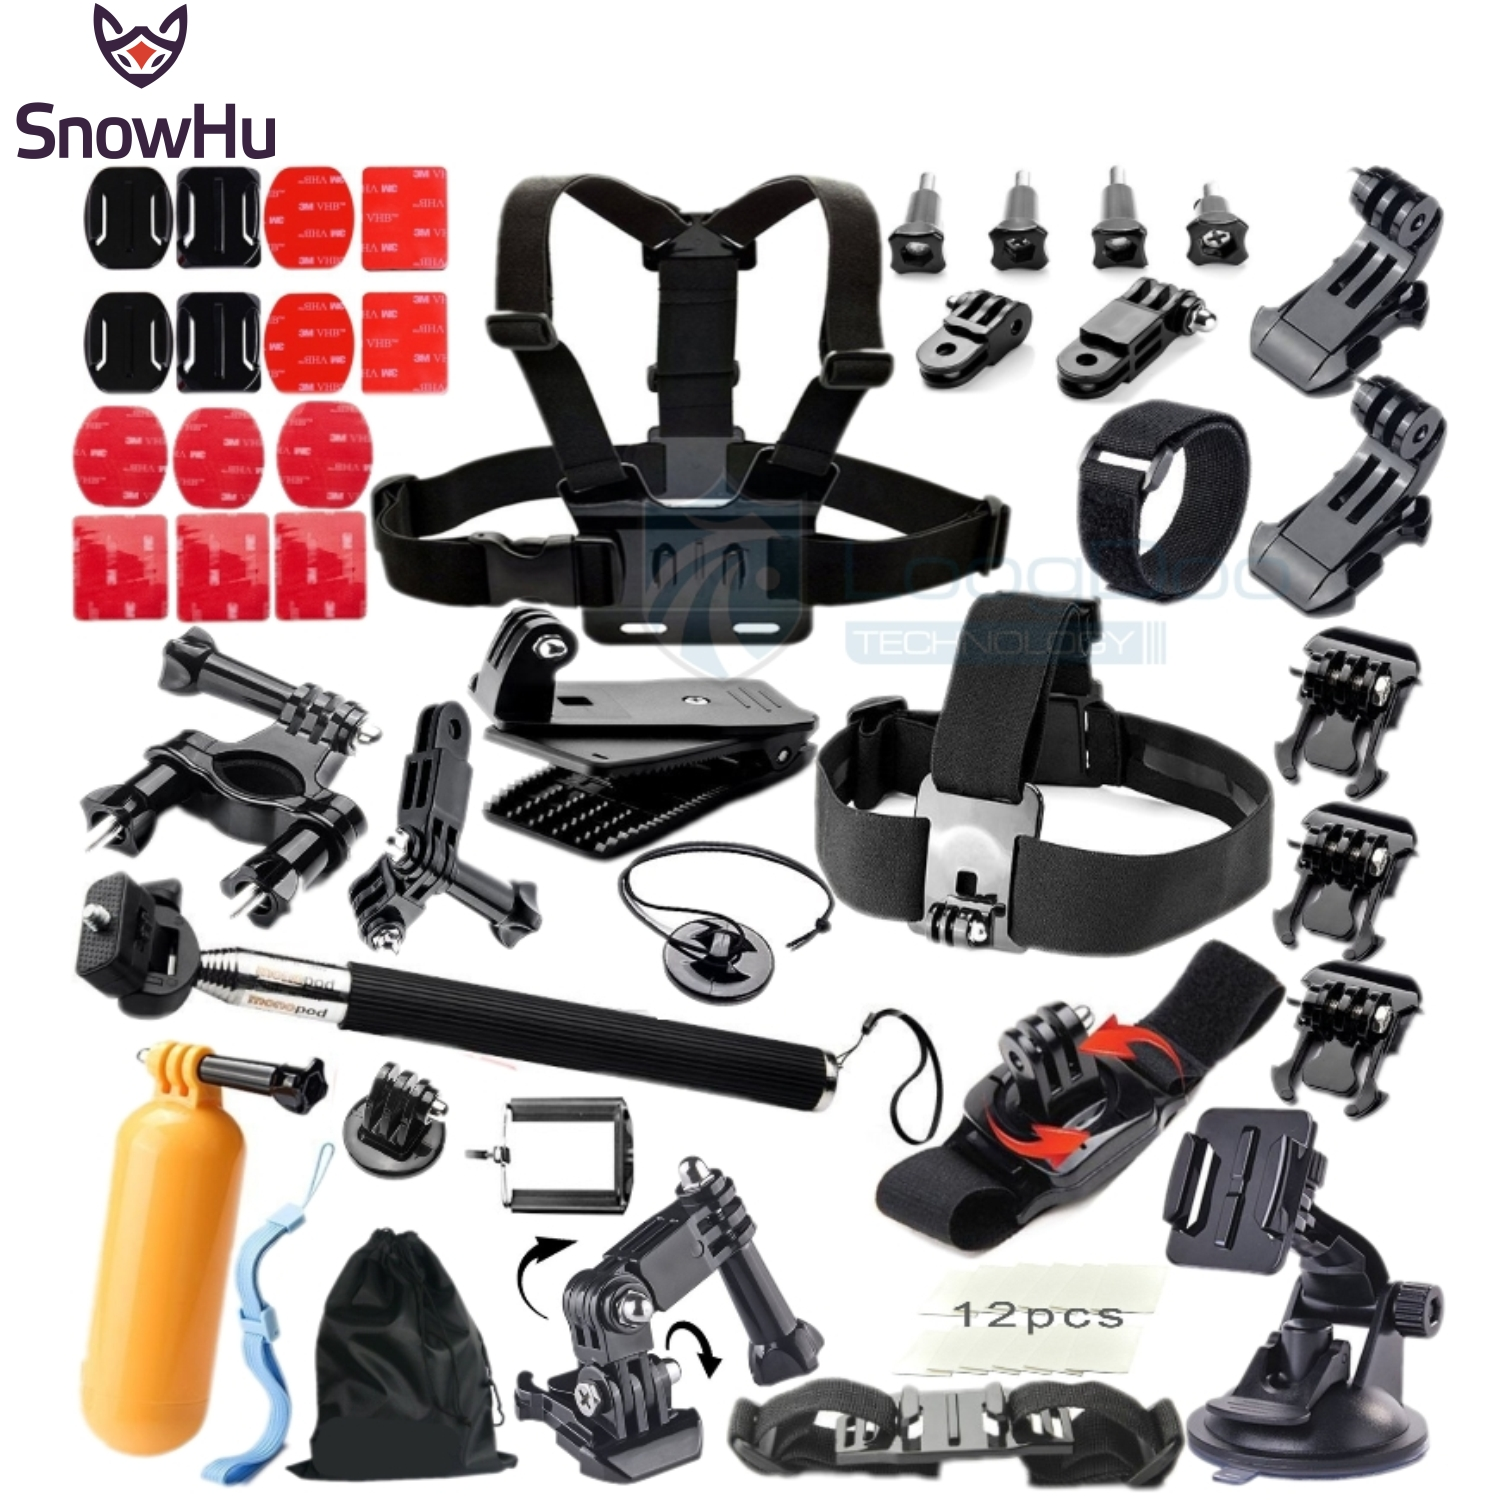 SnowHu for Gopro Accessories Floating Tripod stick Monopod Chest Strap Adapter Set For Go pro Hero